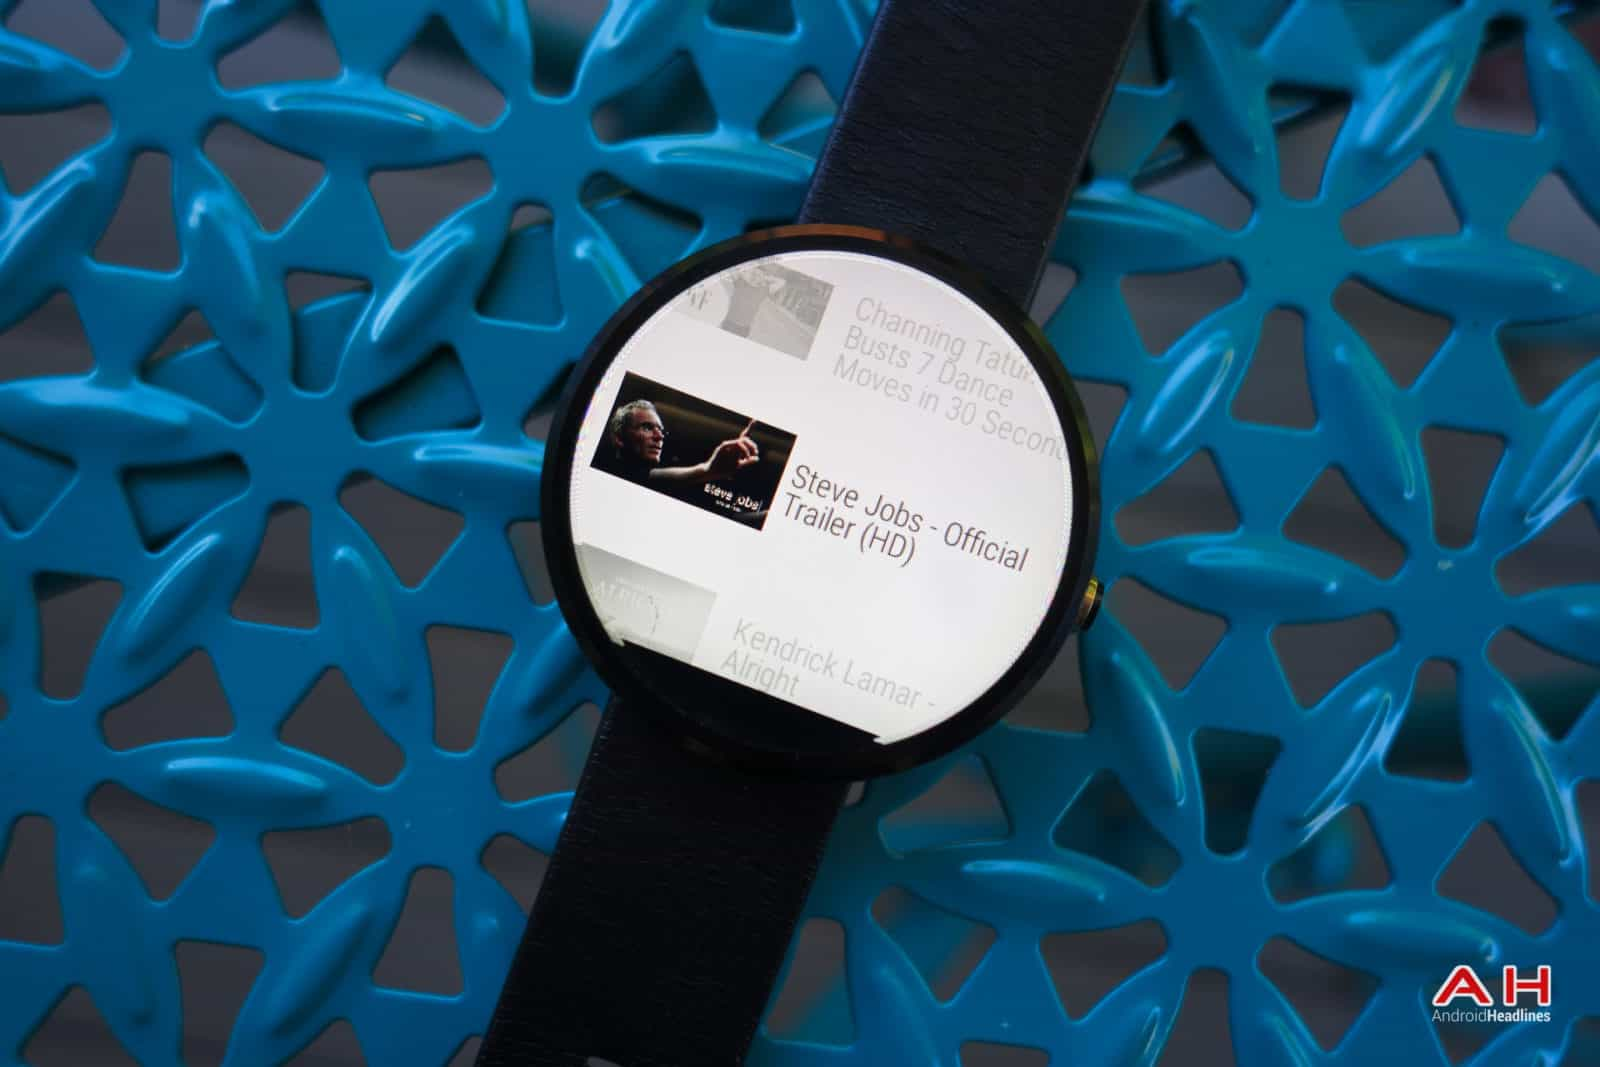 AH Video for Android Wear-2